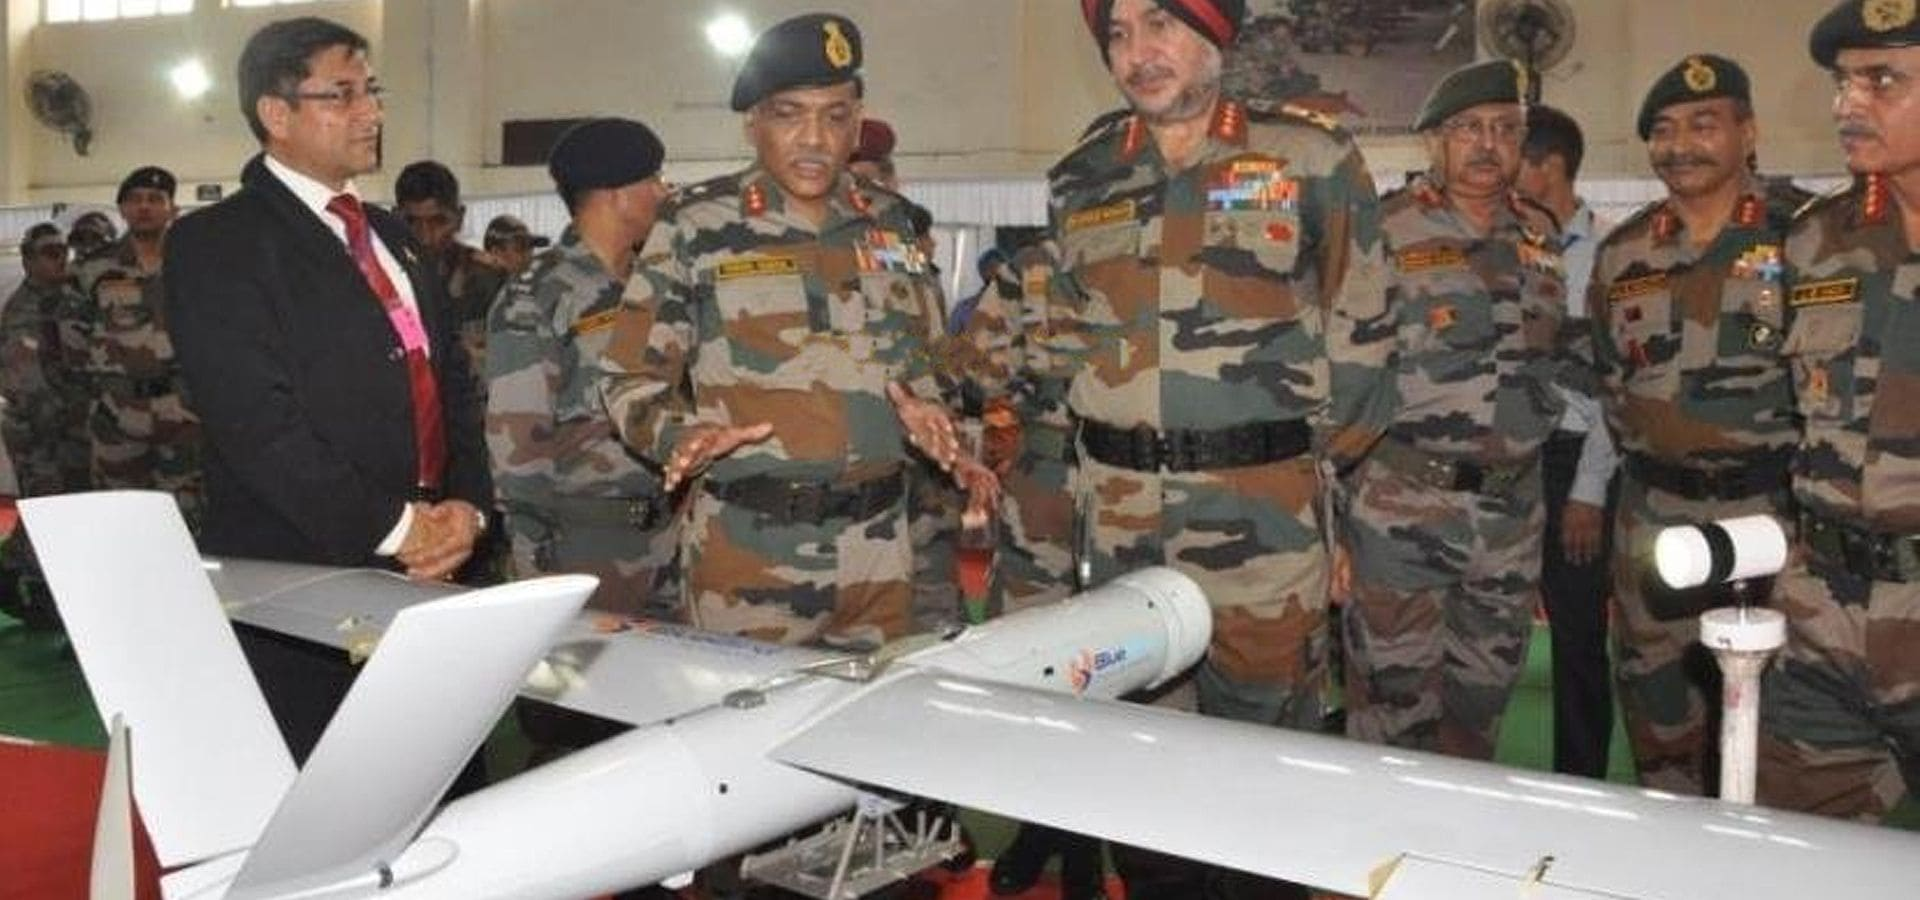 Our UAVs at Indian Army's North Command North-Tech Event